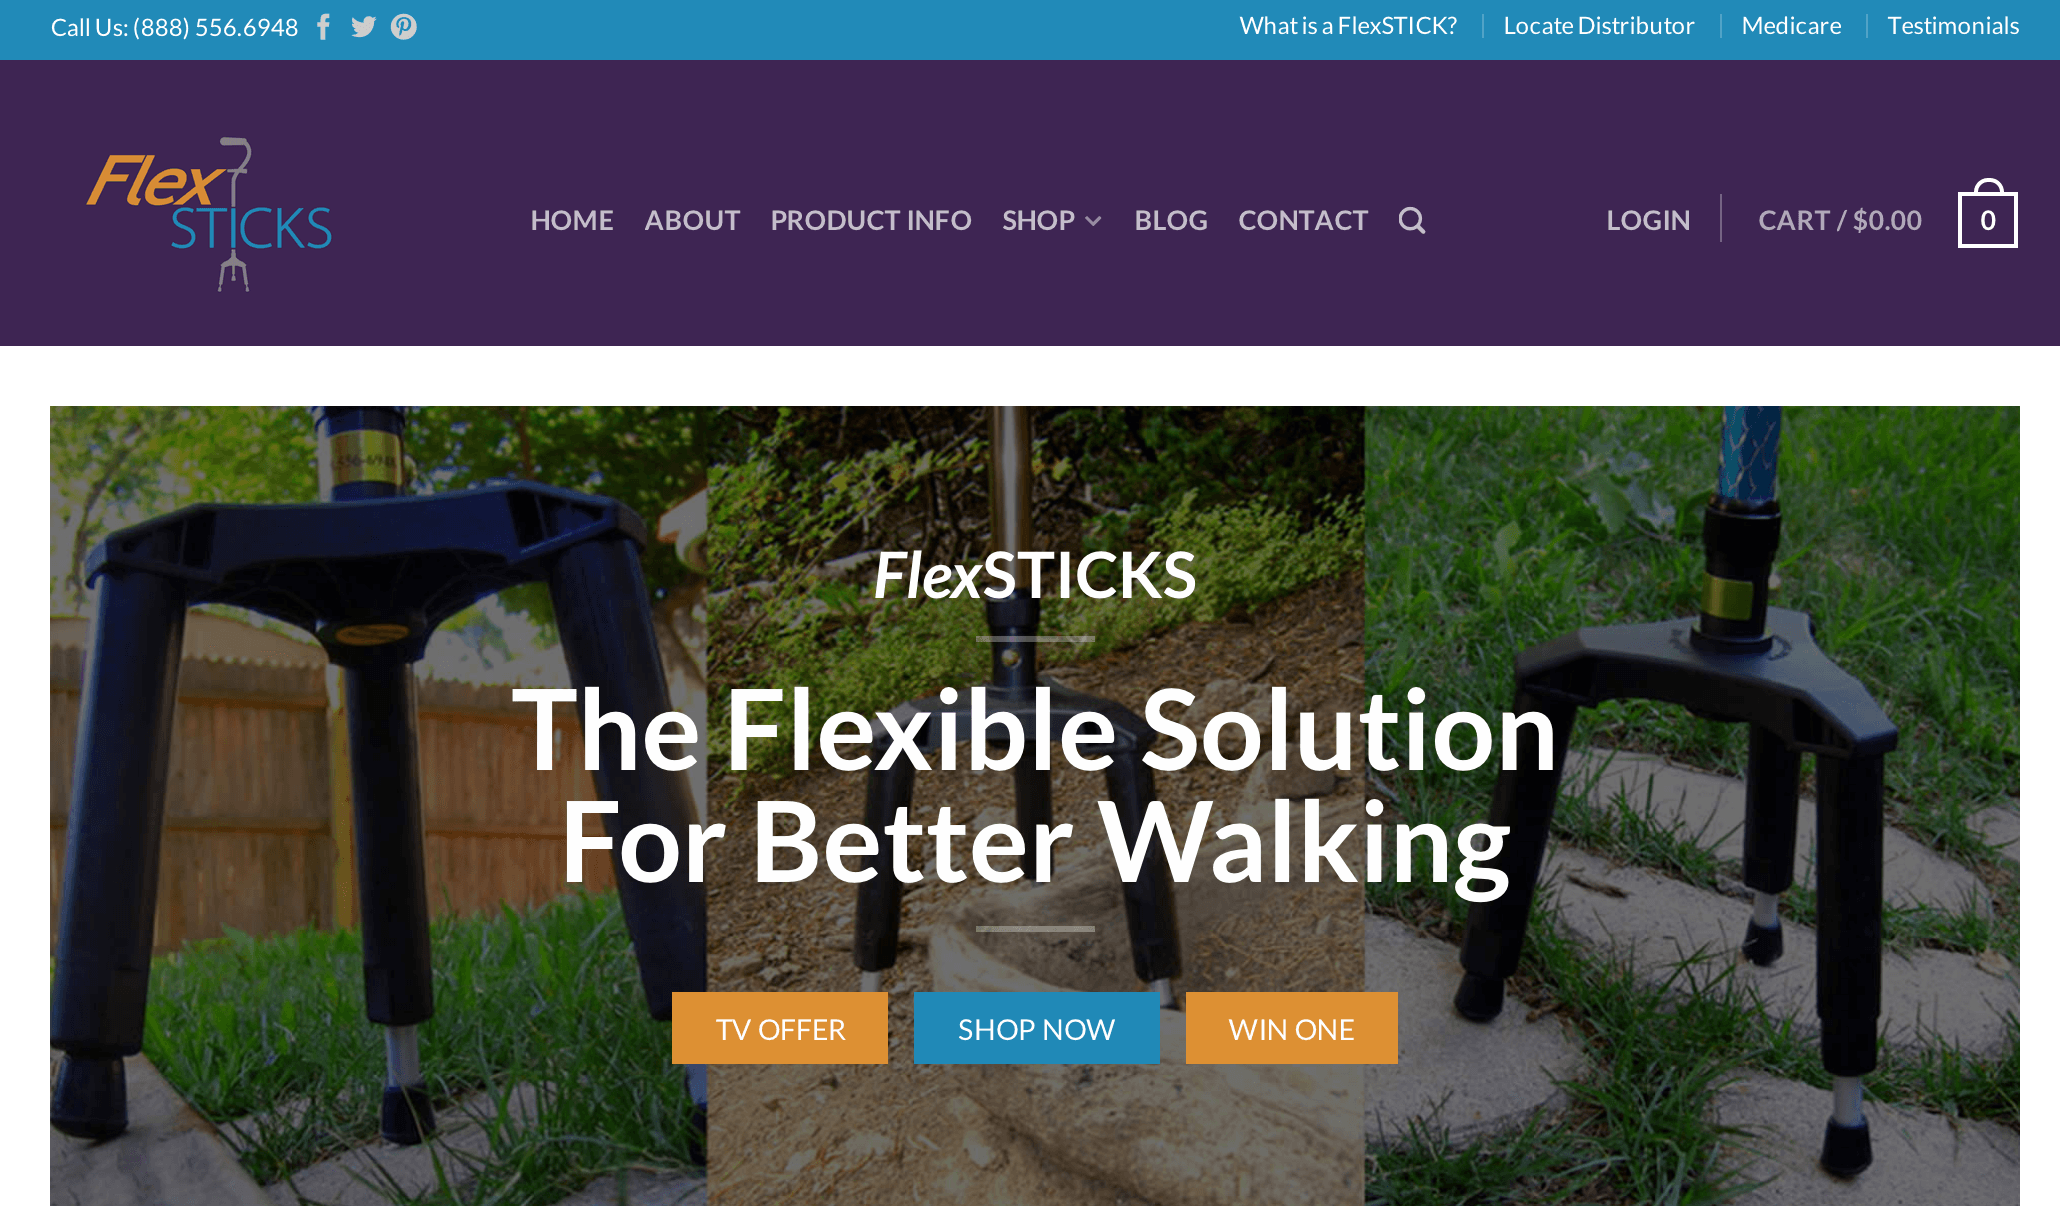 FlexSTICKS